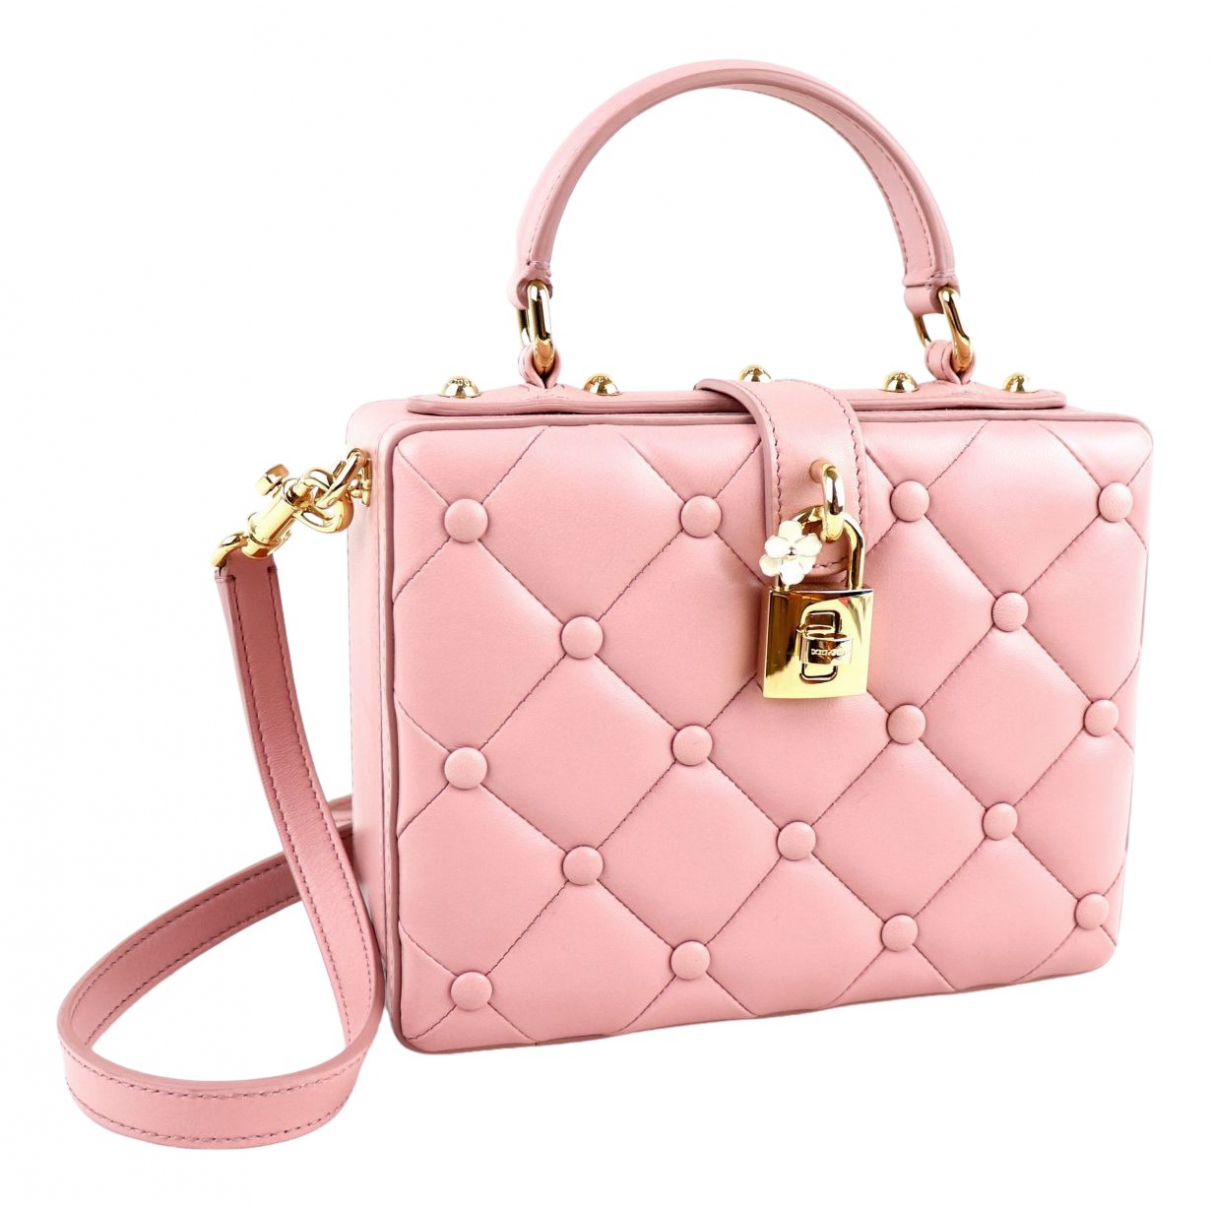 Dolce & Gabbana \N Pink Leather handbag for Women \N